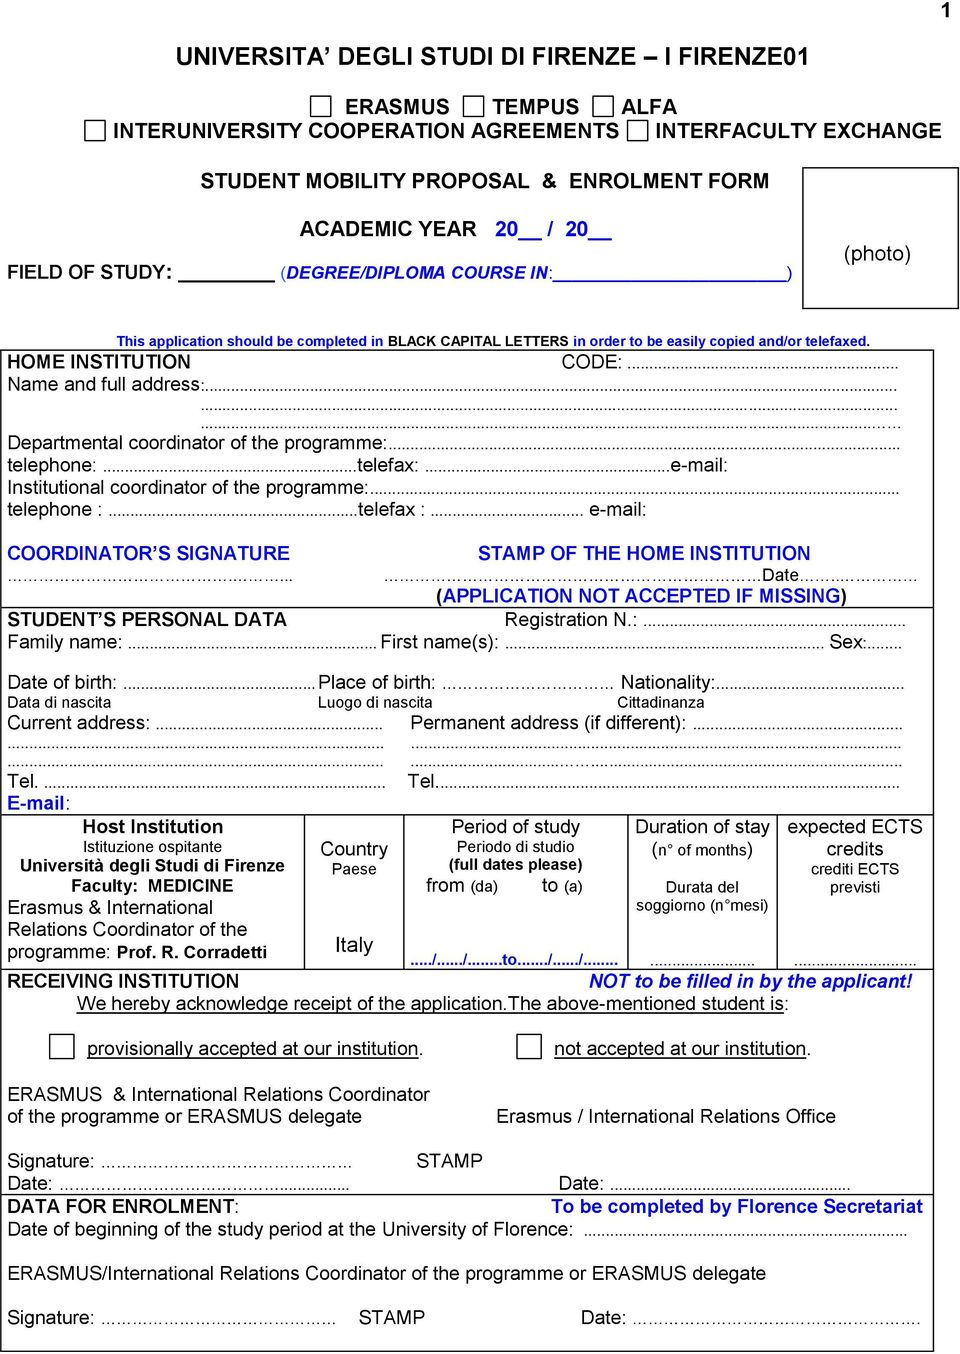 . telephone :...telefax :. e-mail: COORDINATOR S SIGNATURE STAMP OF THE HOME INSTITUTION.... Date.. (APPLICATION NOT ACCEPTED IF MISSING) STUDENT S PERSONAL DATA Registration N.:... Family name:.